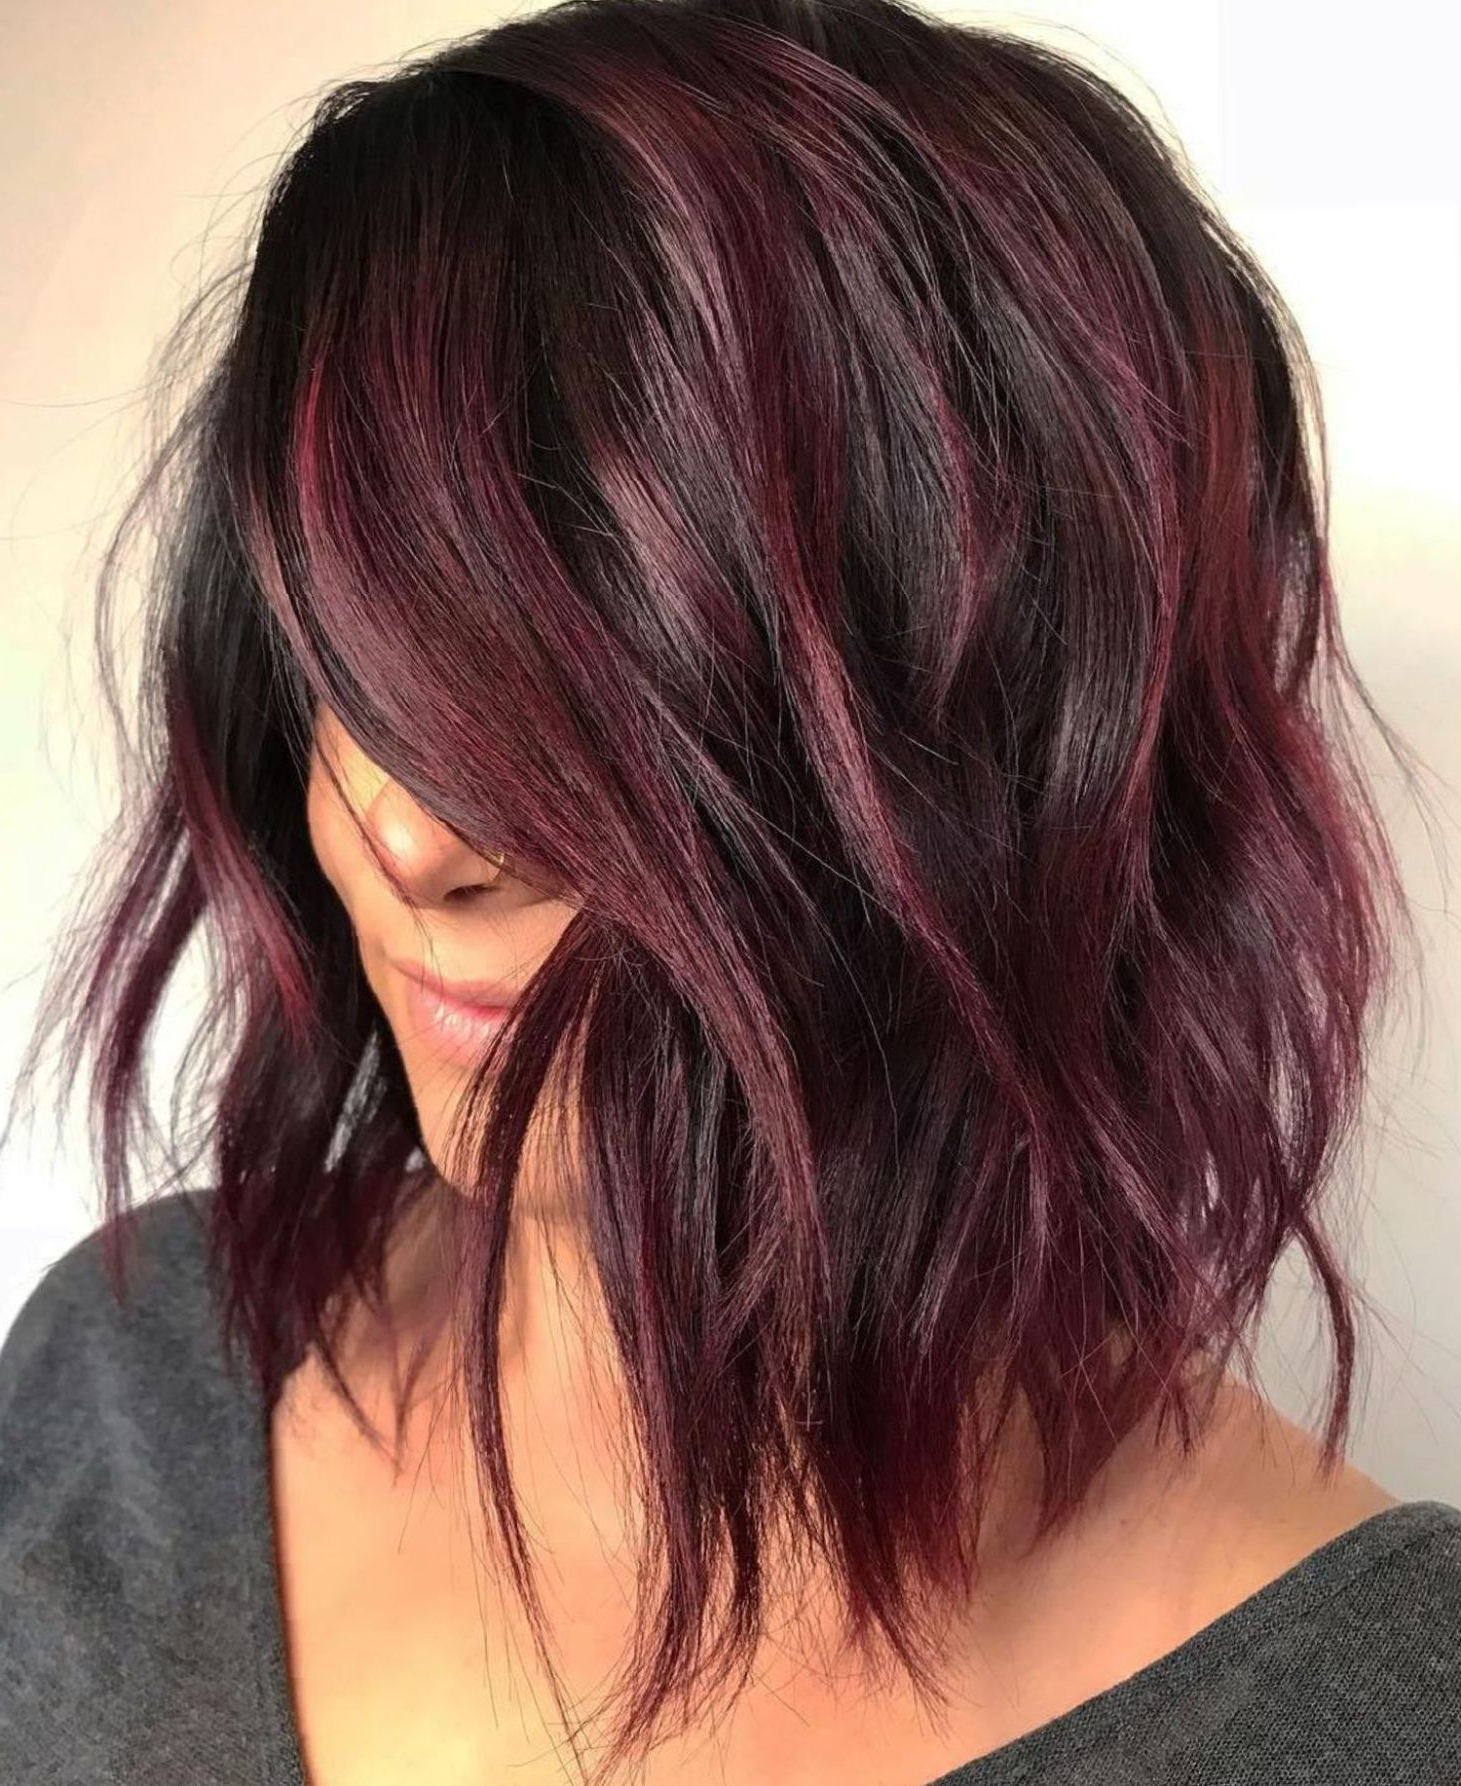 Choppy Burgundy Balayage Bob   Curly Hair Styles Naturally Intended For Burgundy Balayage On Dark Hairstyles (View 5 of 20)